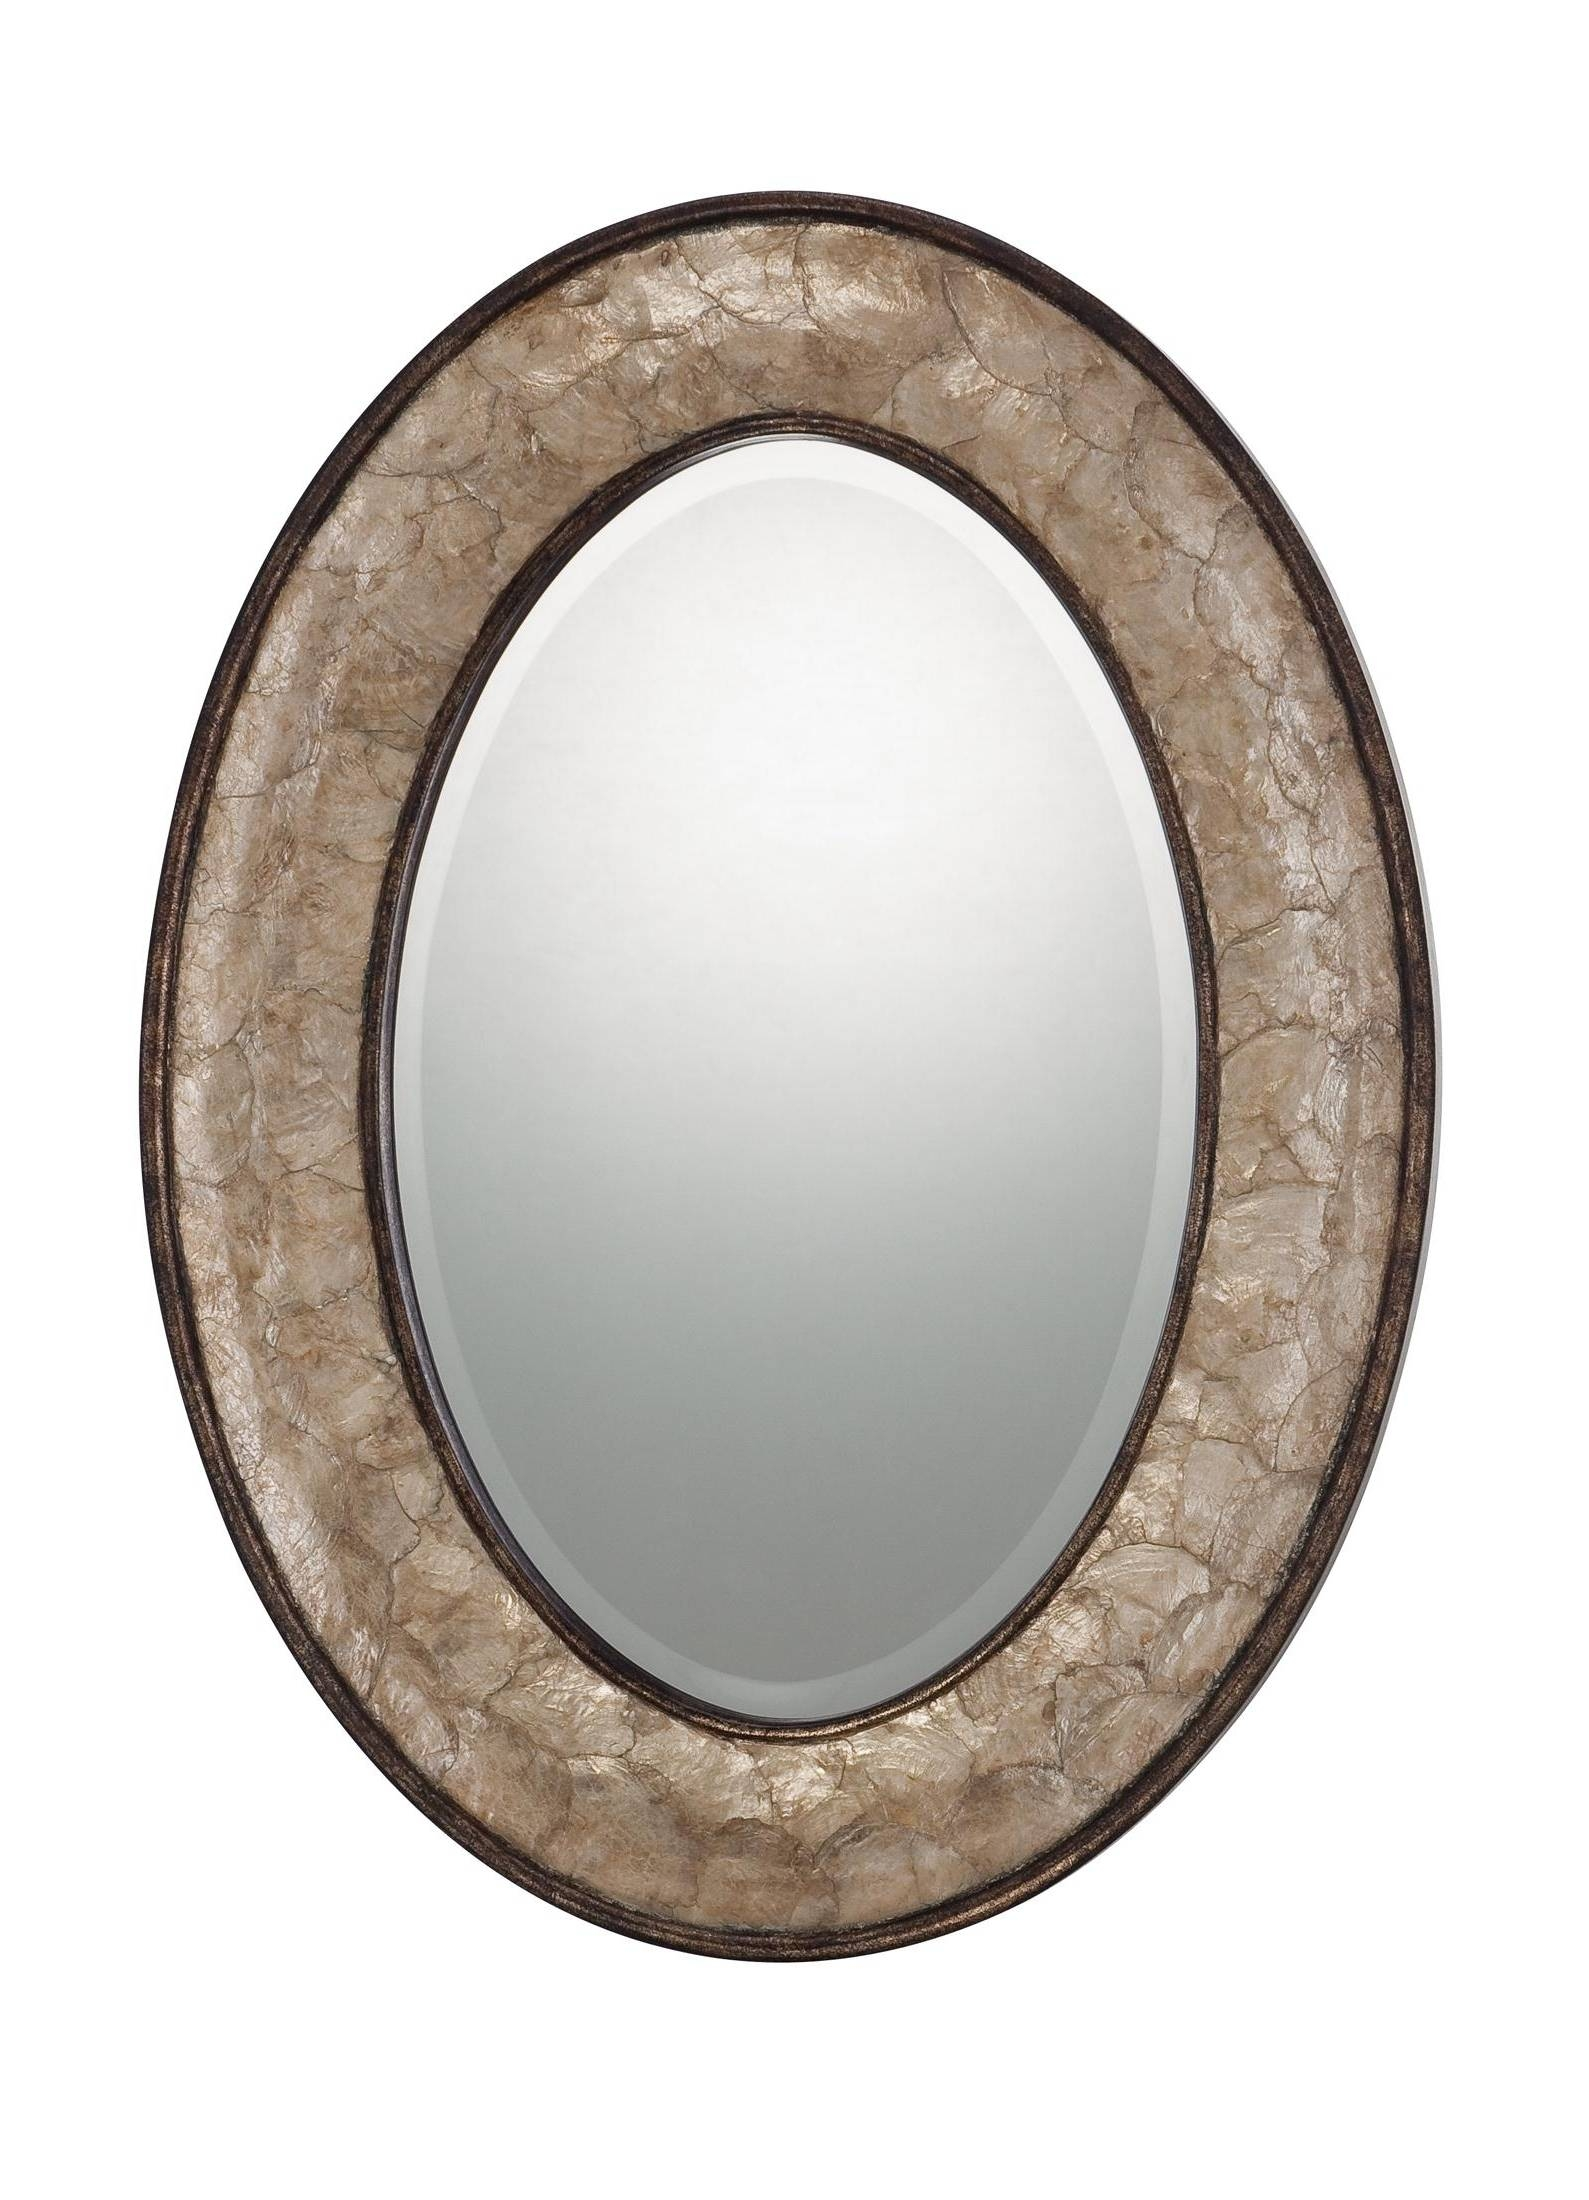 25 photos silver oval wall mirrors bathroom silver oval bathroom mirrors silver oval wall mirror inside silver oval wall mirrors amipublicfo Choice Image